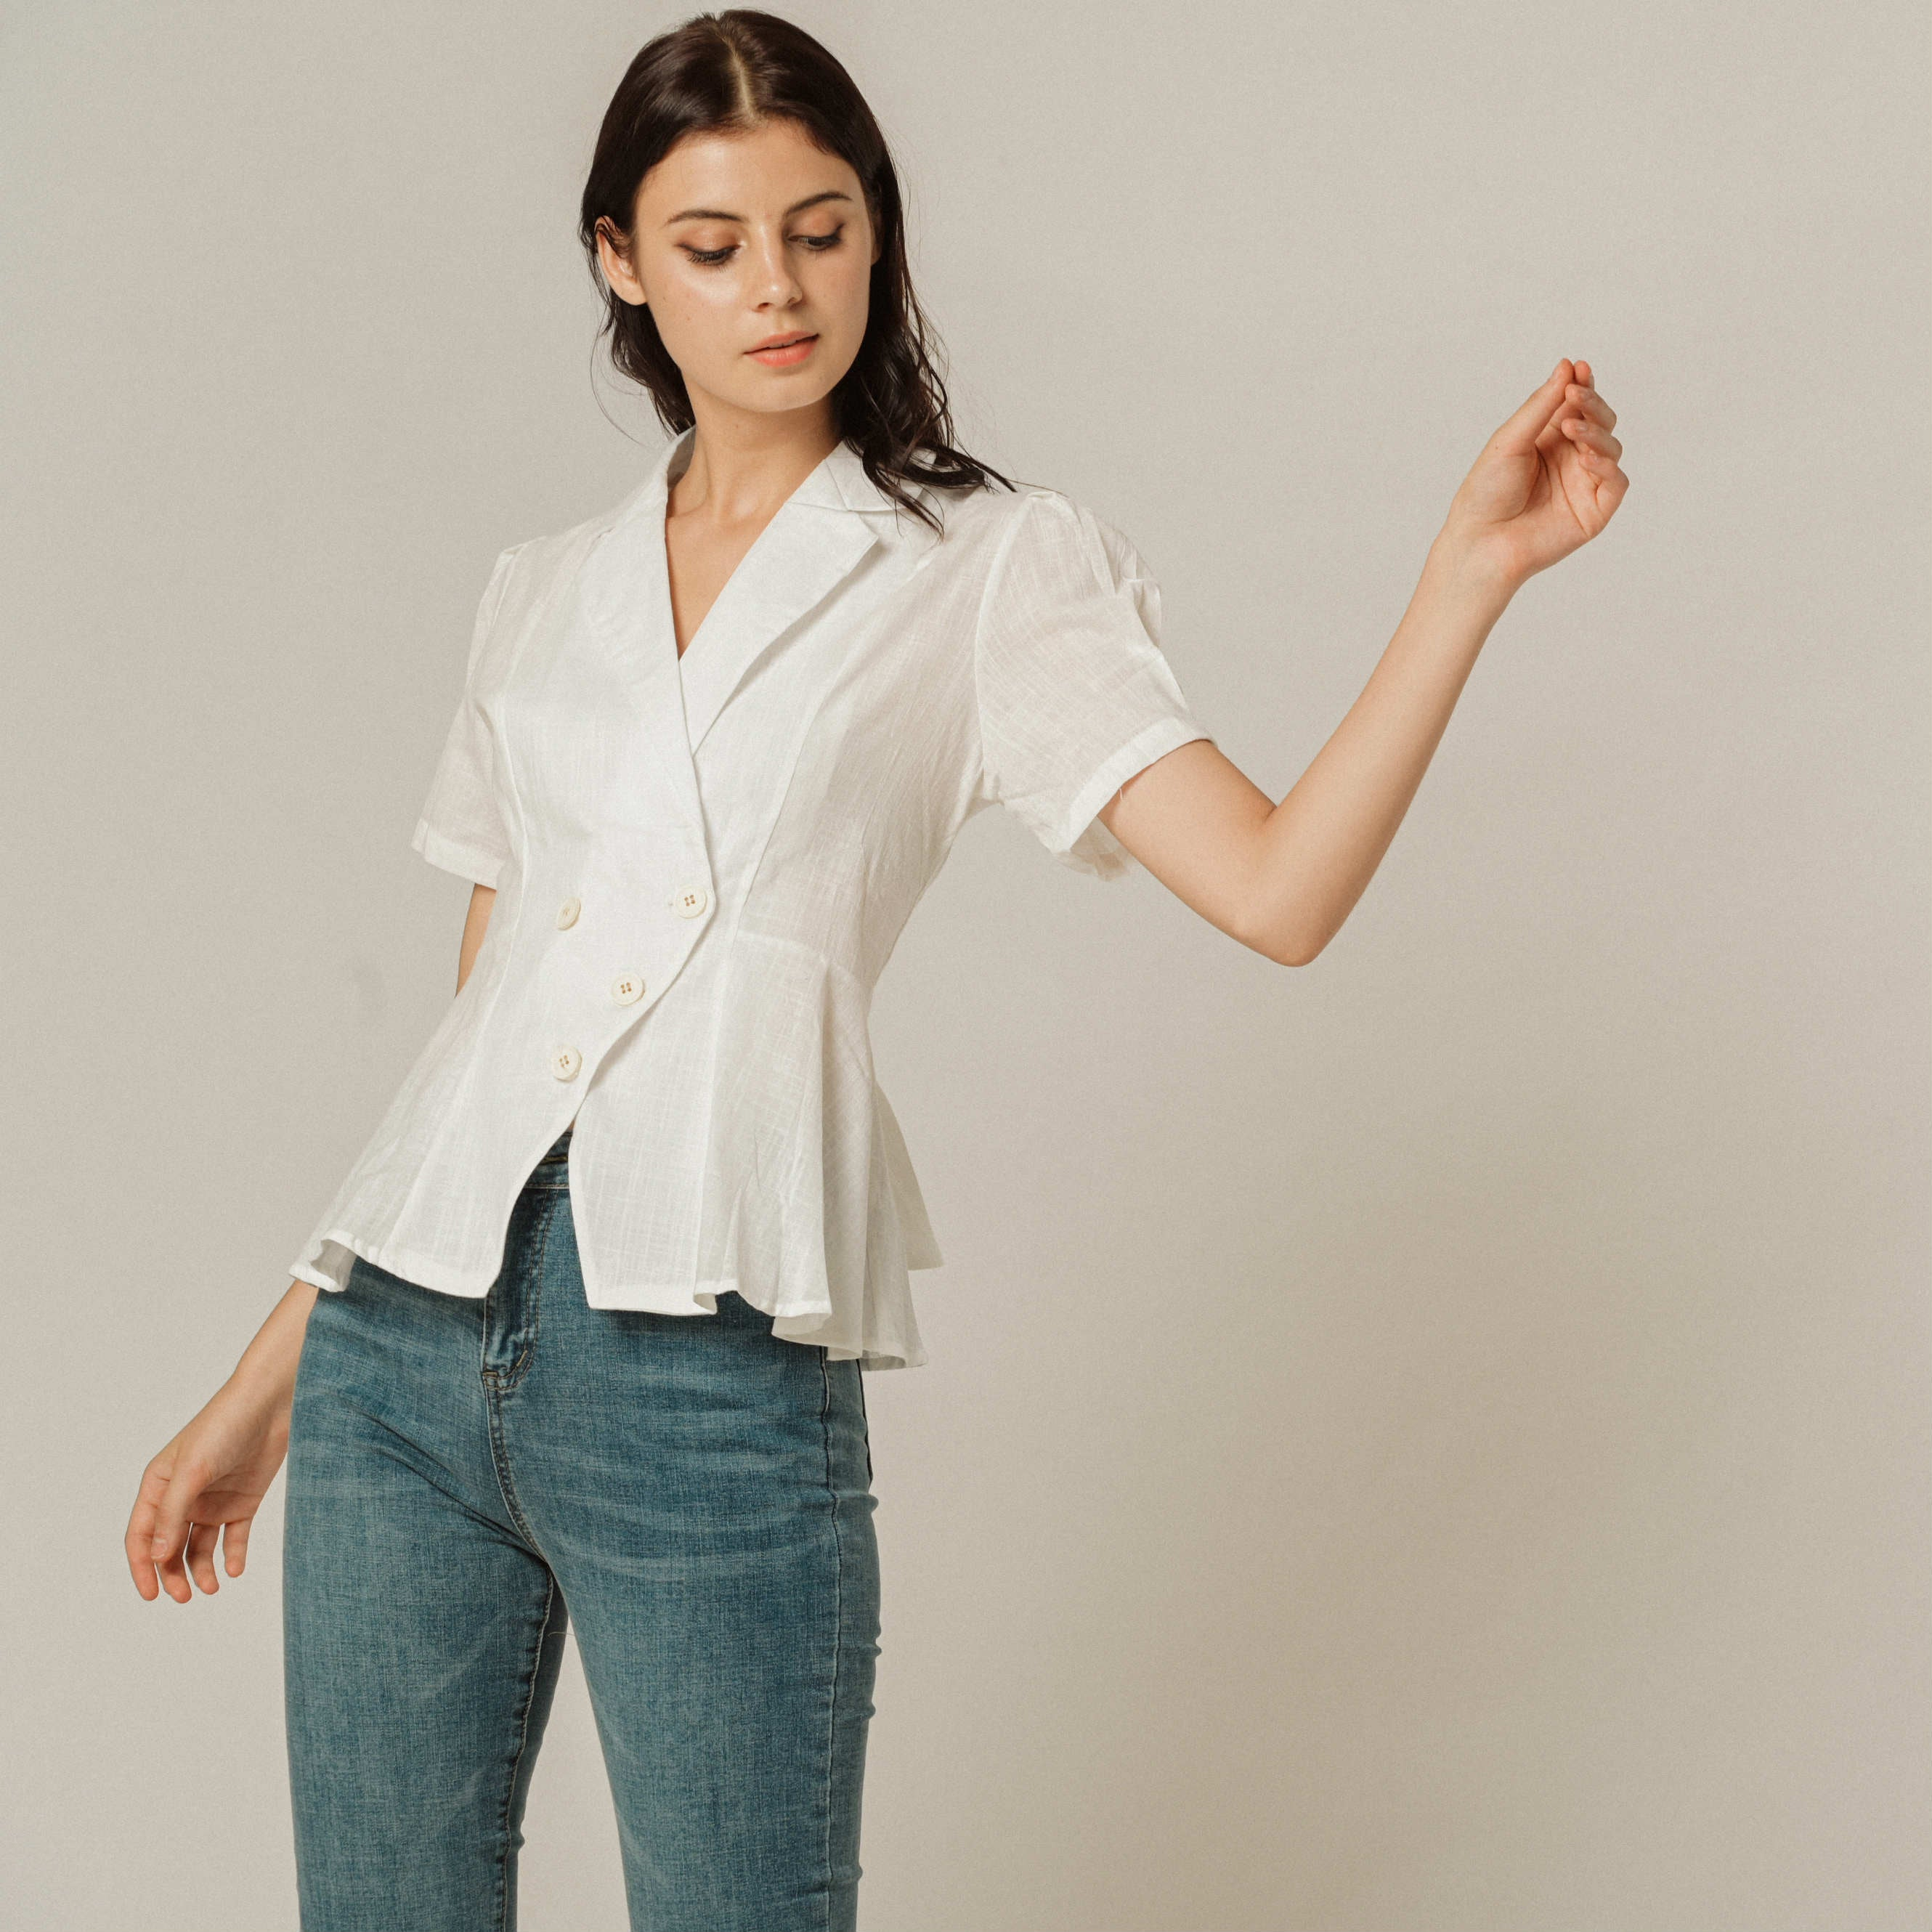 Ineda Buttoned Top - White